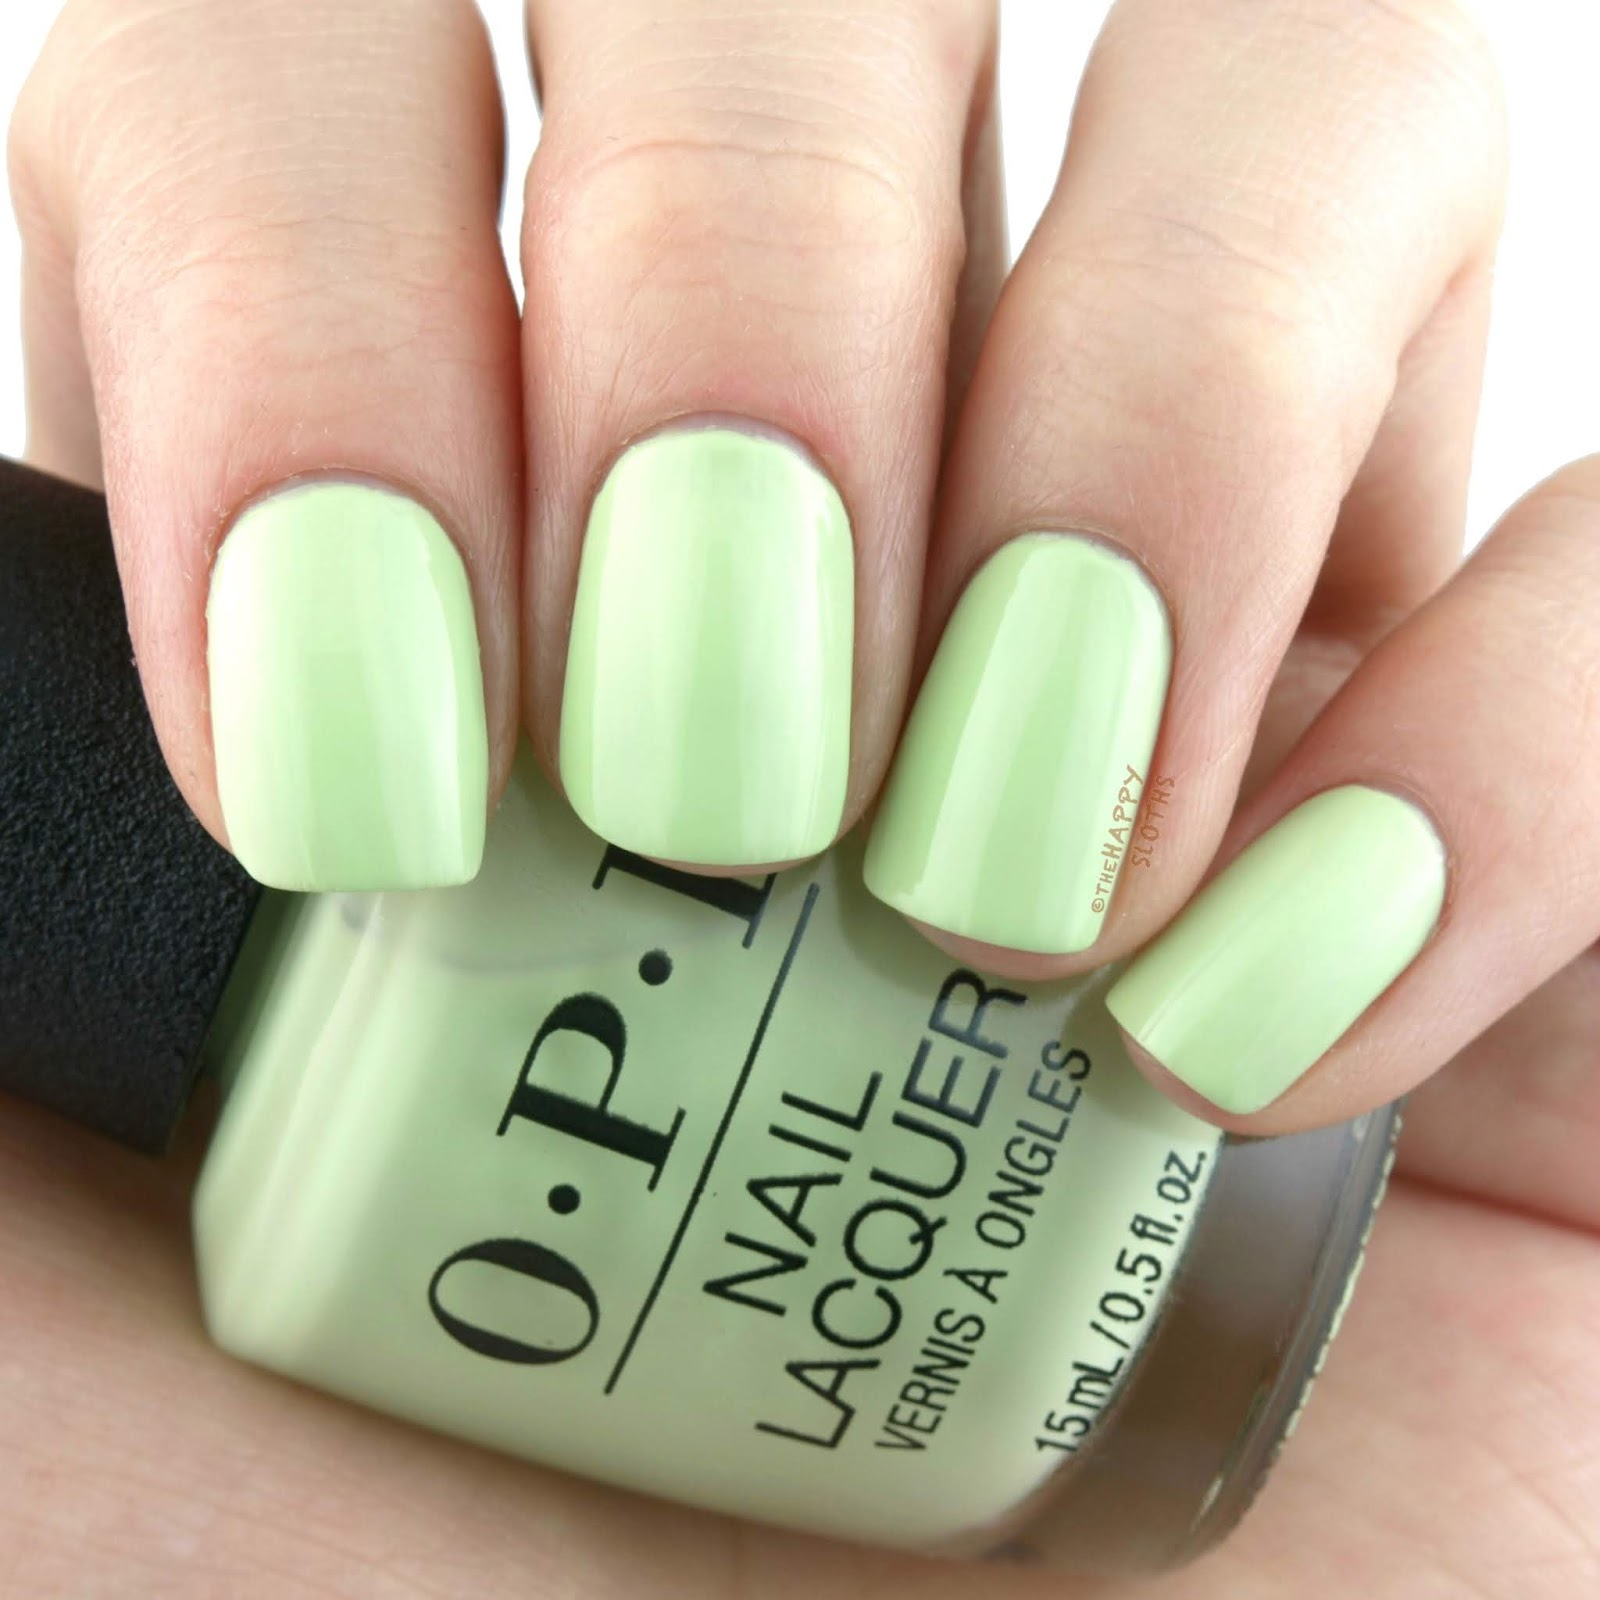 OPI Spring 2019 Tokyo Collection | How Does Your Zen Garden Grow?: Review and Swatches